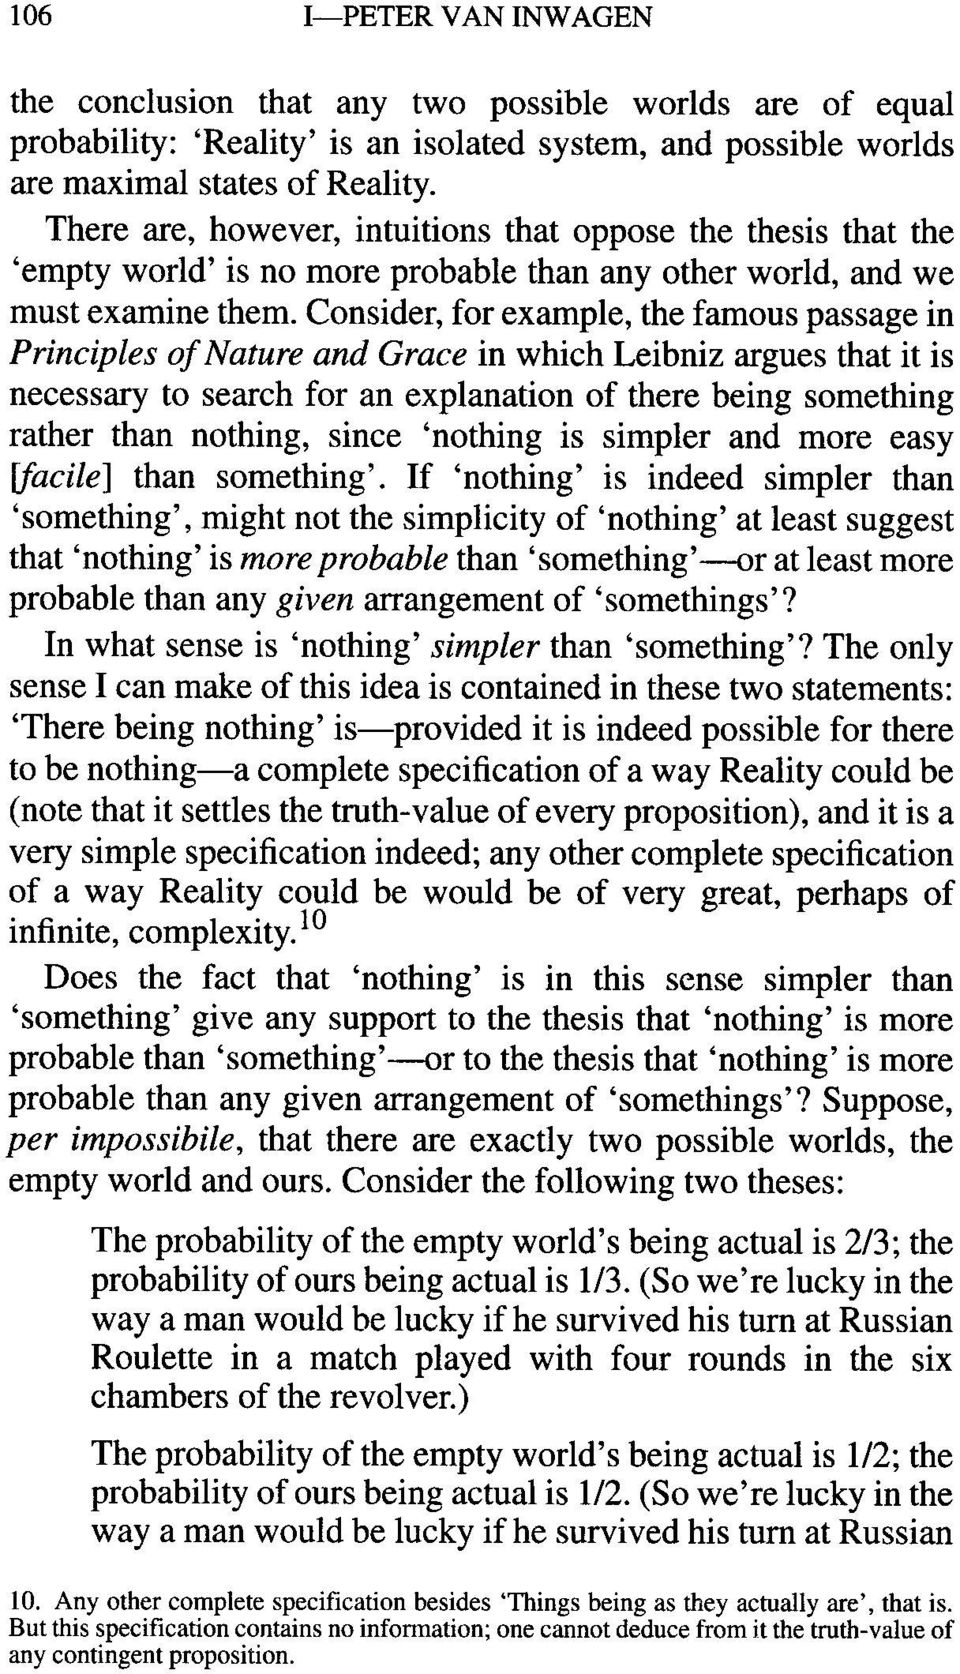 Consider, for example, the famous passage in Principles of Nature and Grace in which Leibniz argues that it is necessary to search for an explanation of there being something rather than nothing,